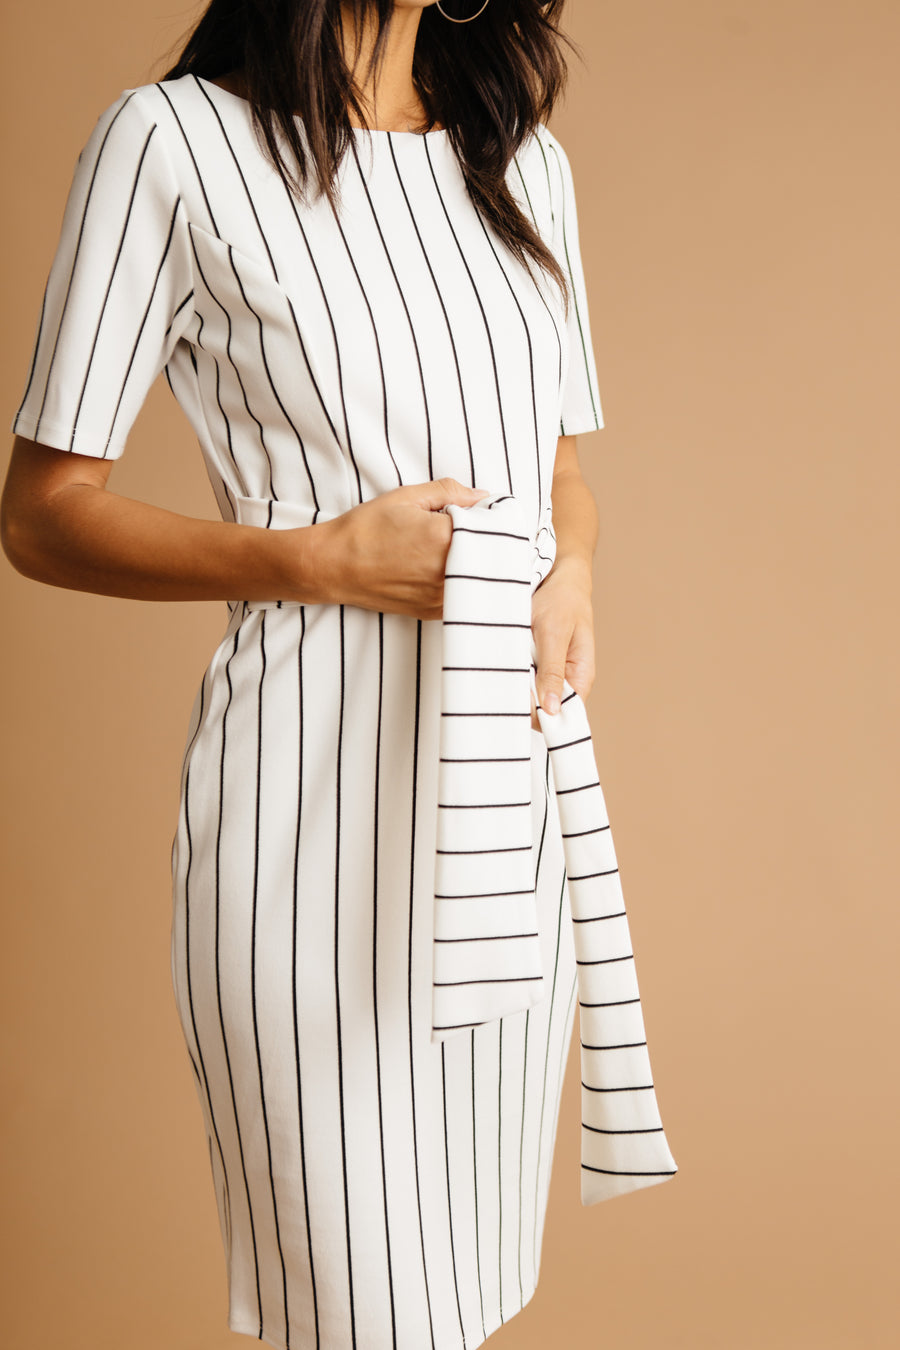 Kate Striped Dress - Bohme